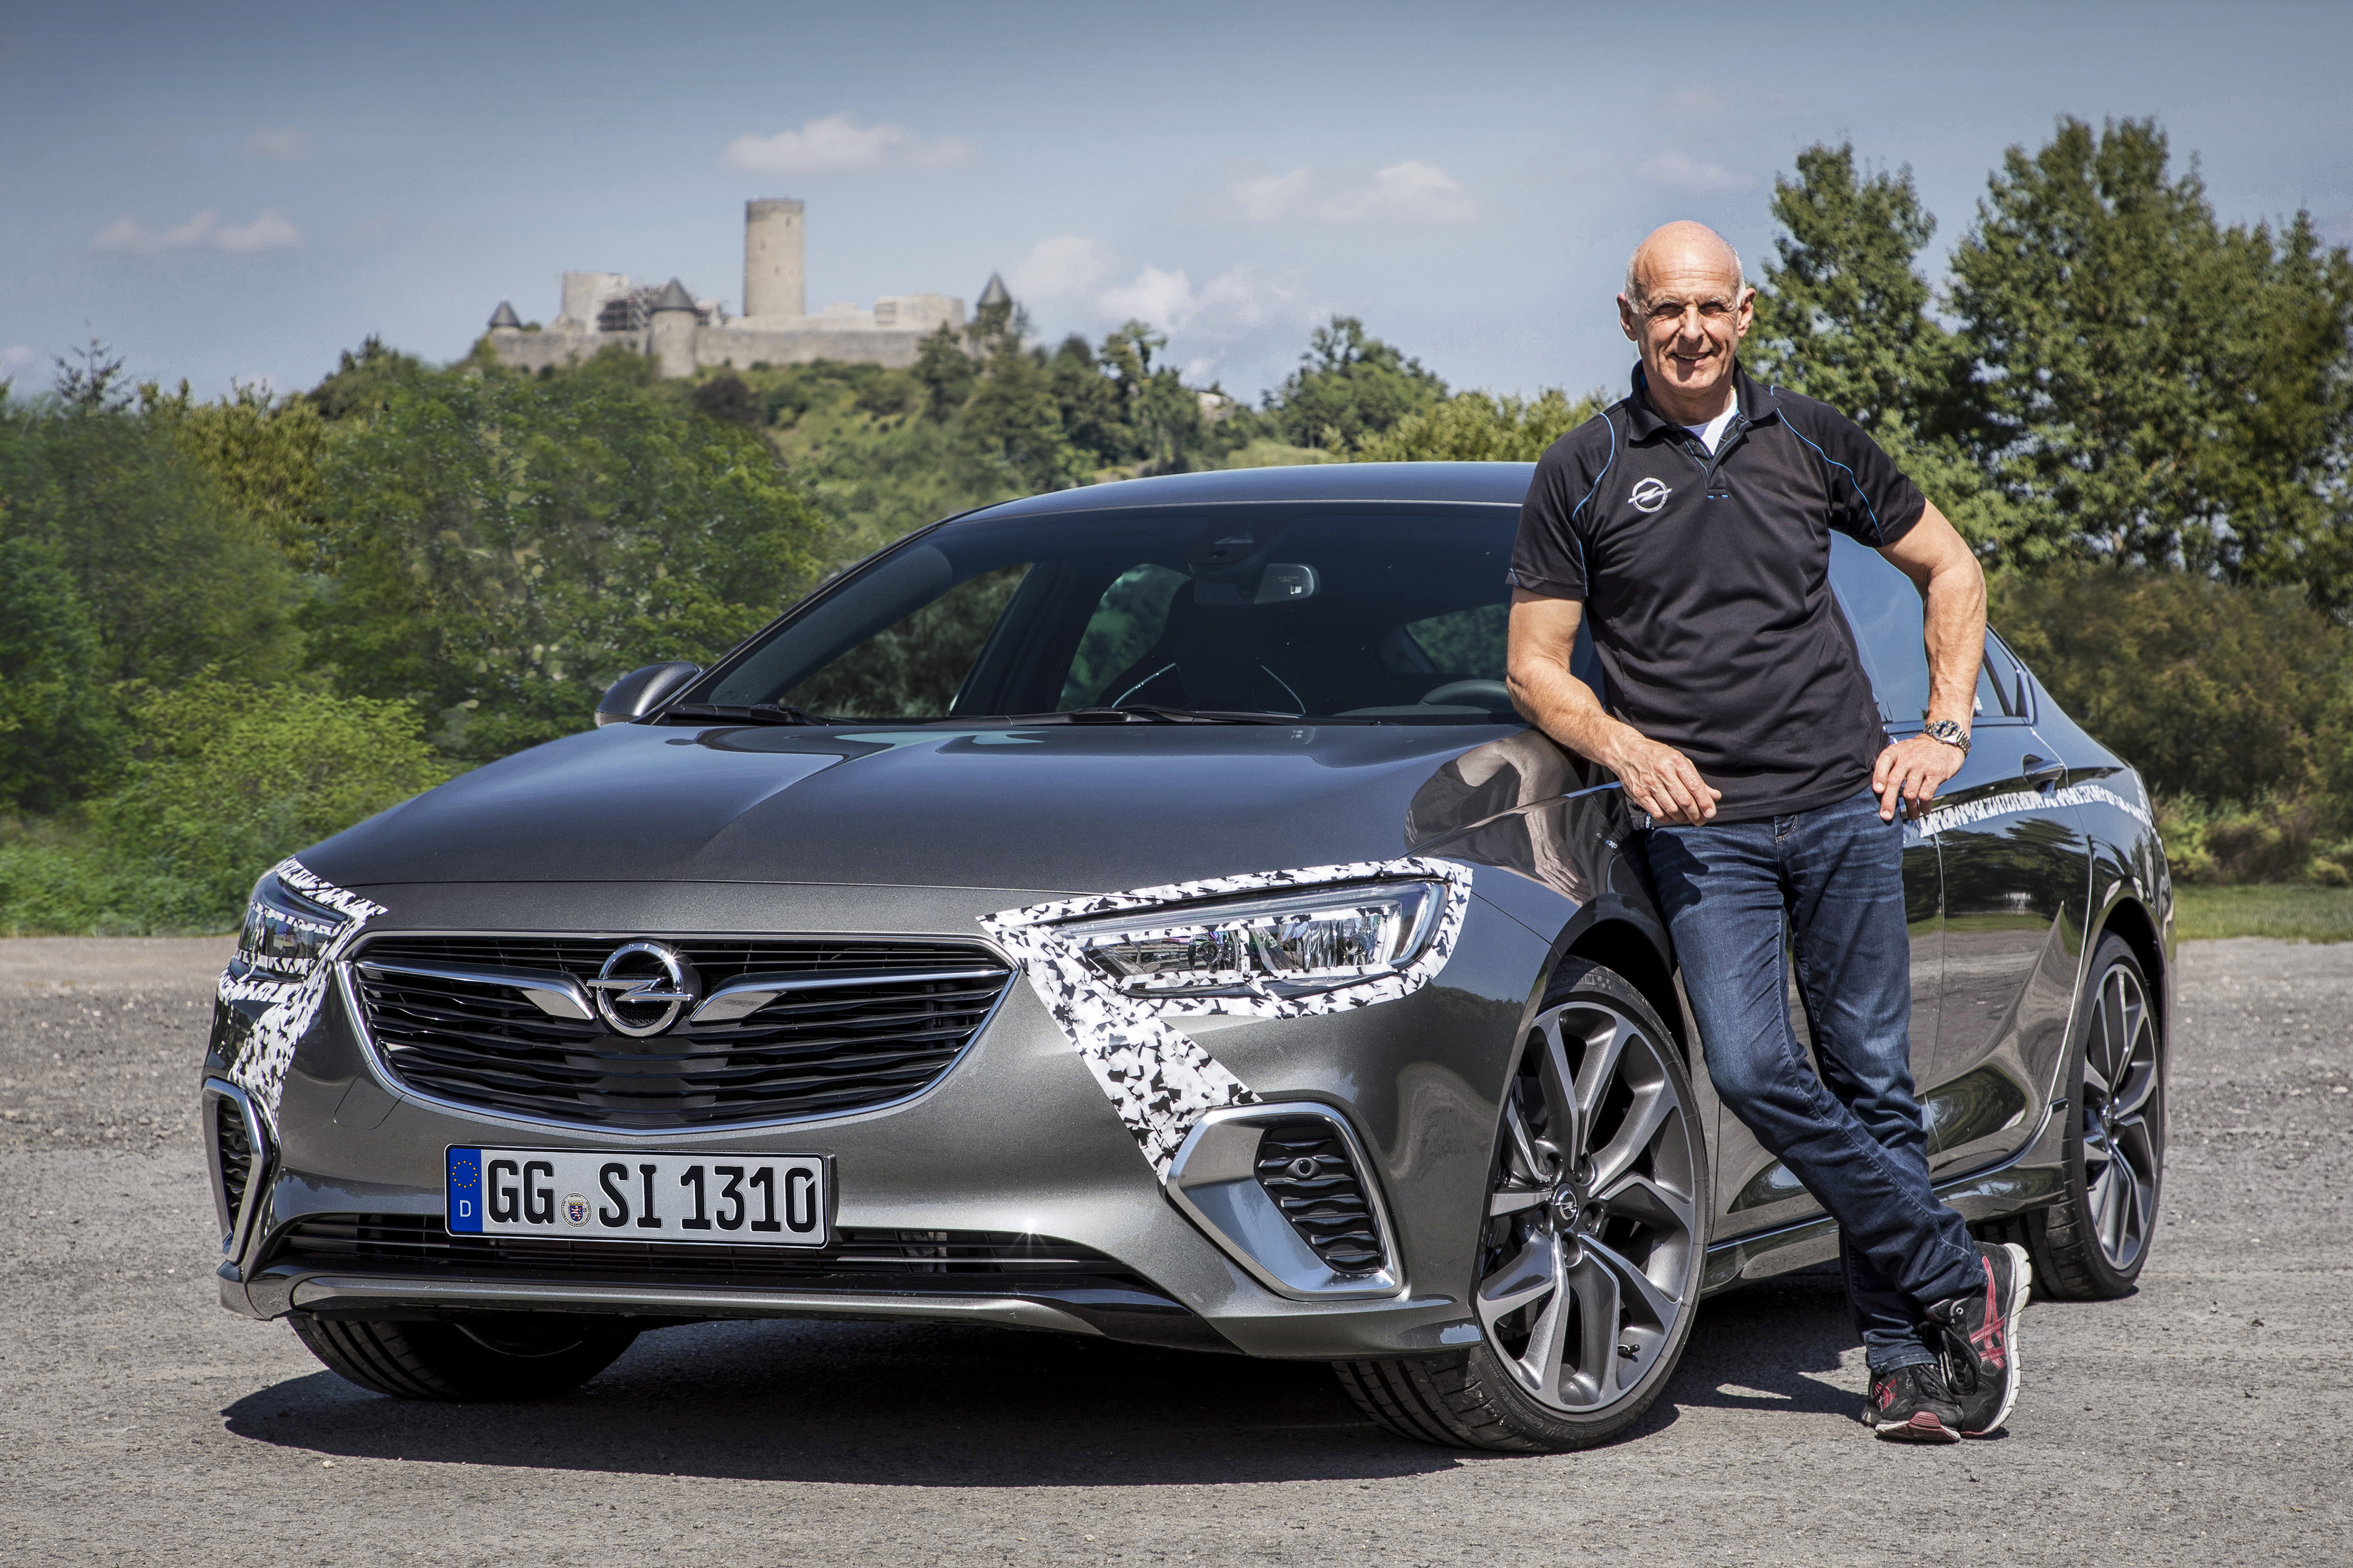 Nürburgring expert: Opel Director Performance Cars and Motorsport Volker Strycek pushed the new Insignia GSi to the limit on the Nordschleife.